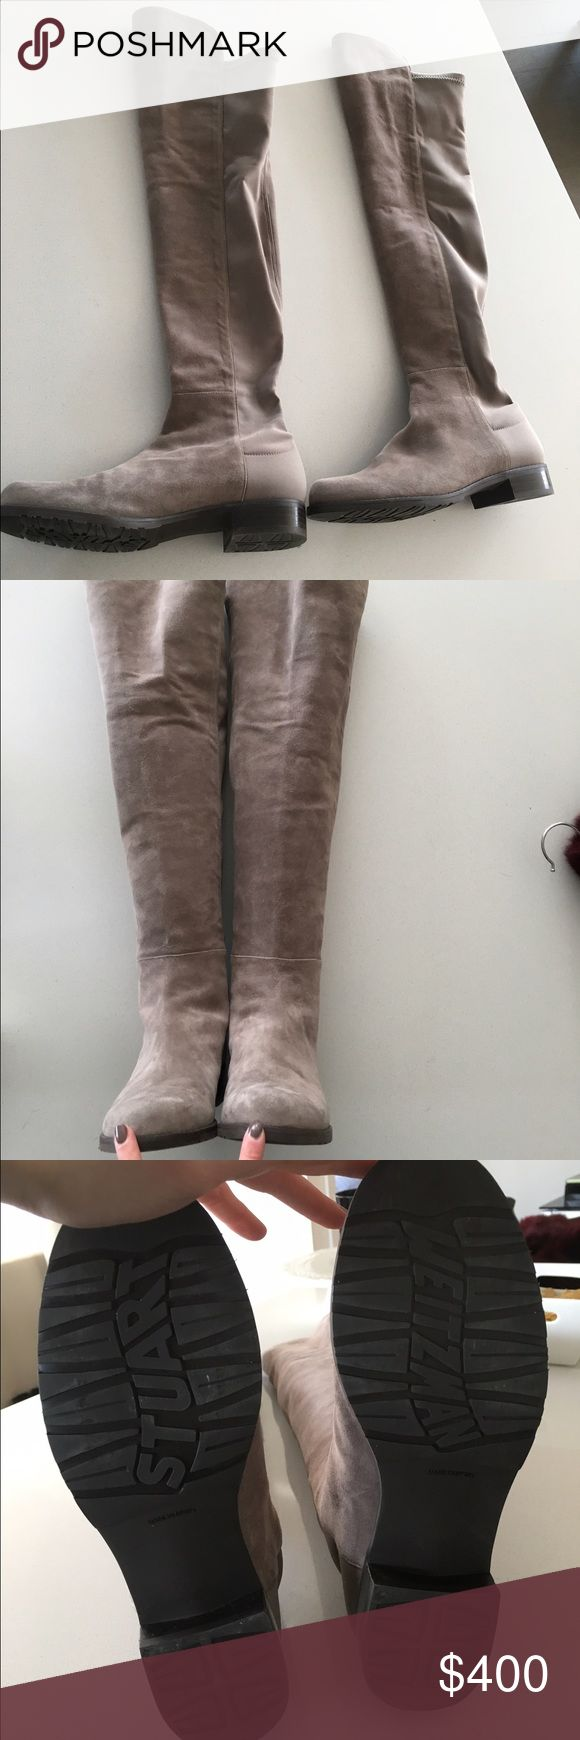 Stuart Weitzman 5050 Boot Over the knee, fits size 7.5-8. Taupe color. Great condition. Worn once. Offers accepted. Stuart Weitzman Shoes Over the Knee Boots